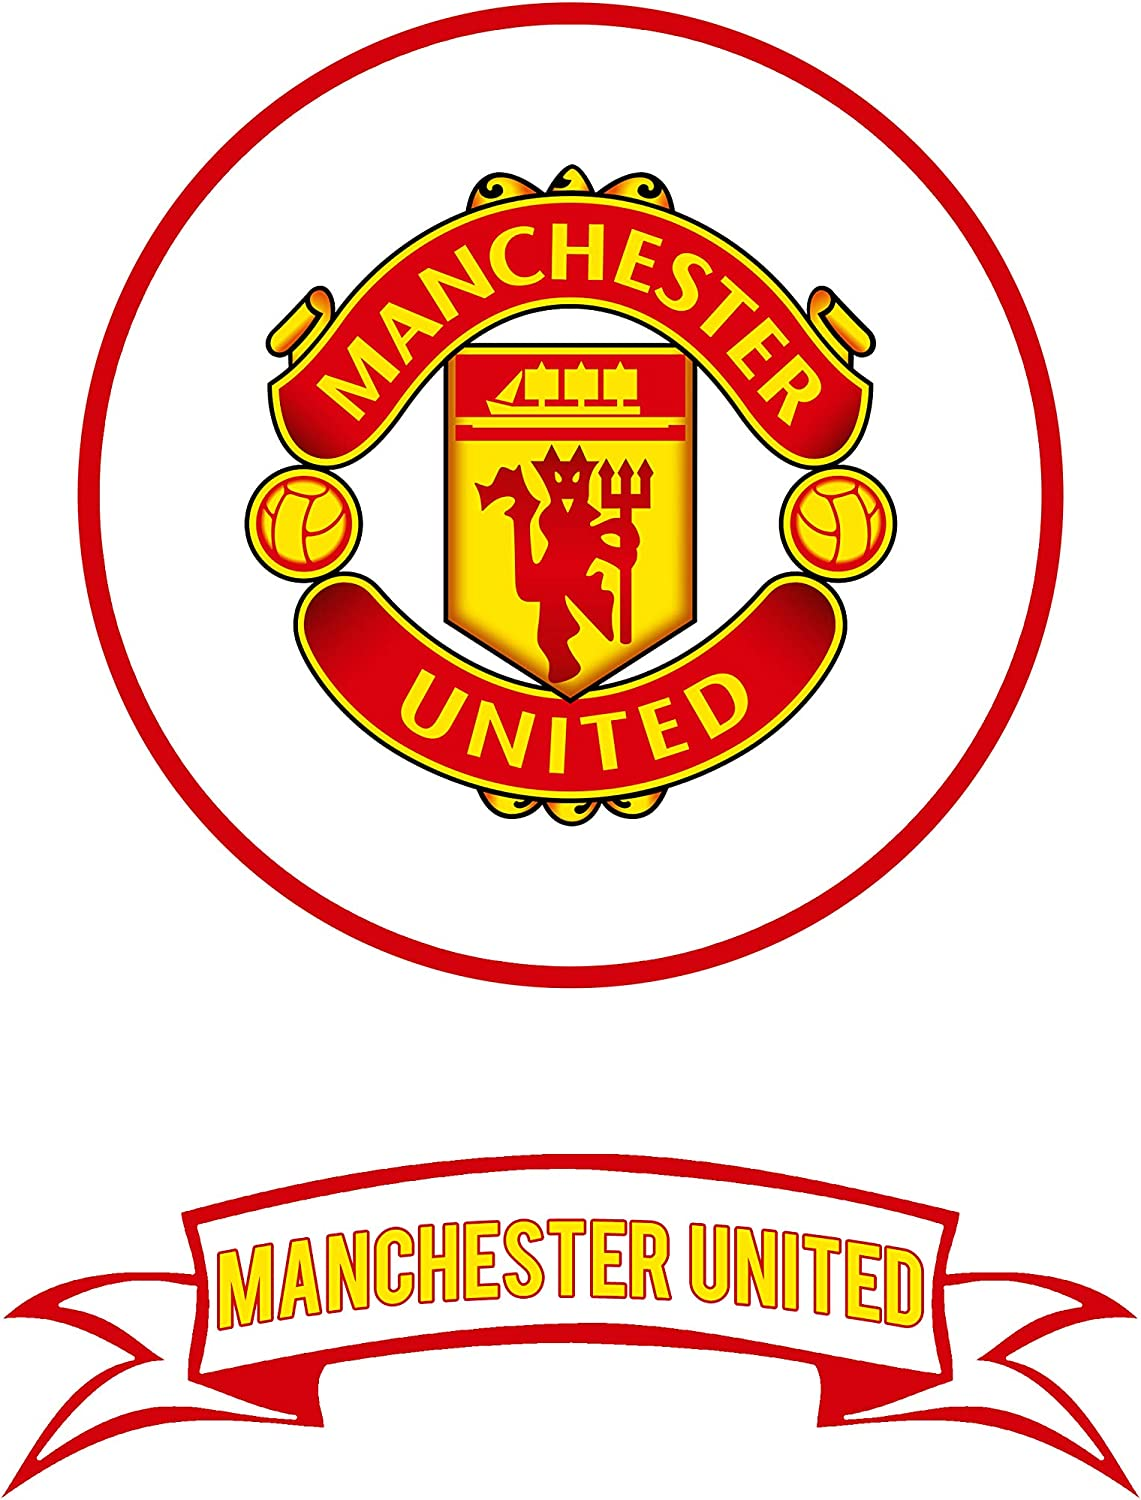 manchester united cake topper and team banner edible icing cake decorations amazon co uk kitchen home manchester united cake topper and team banner edible icing cake decorations